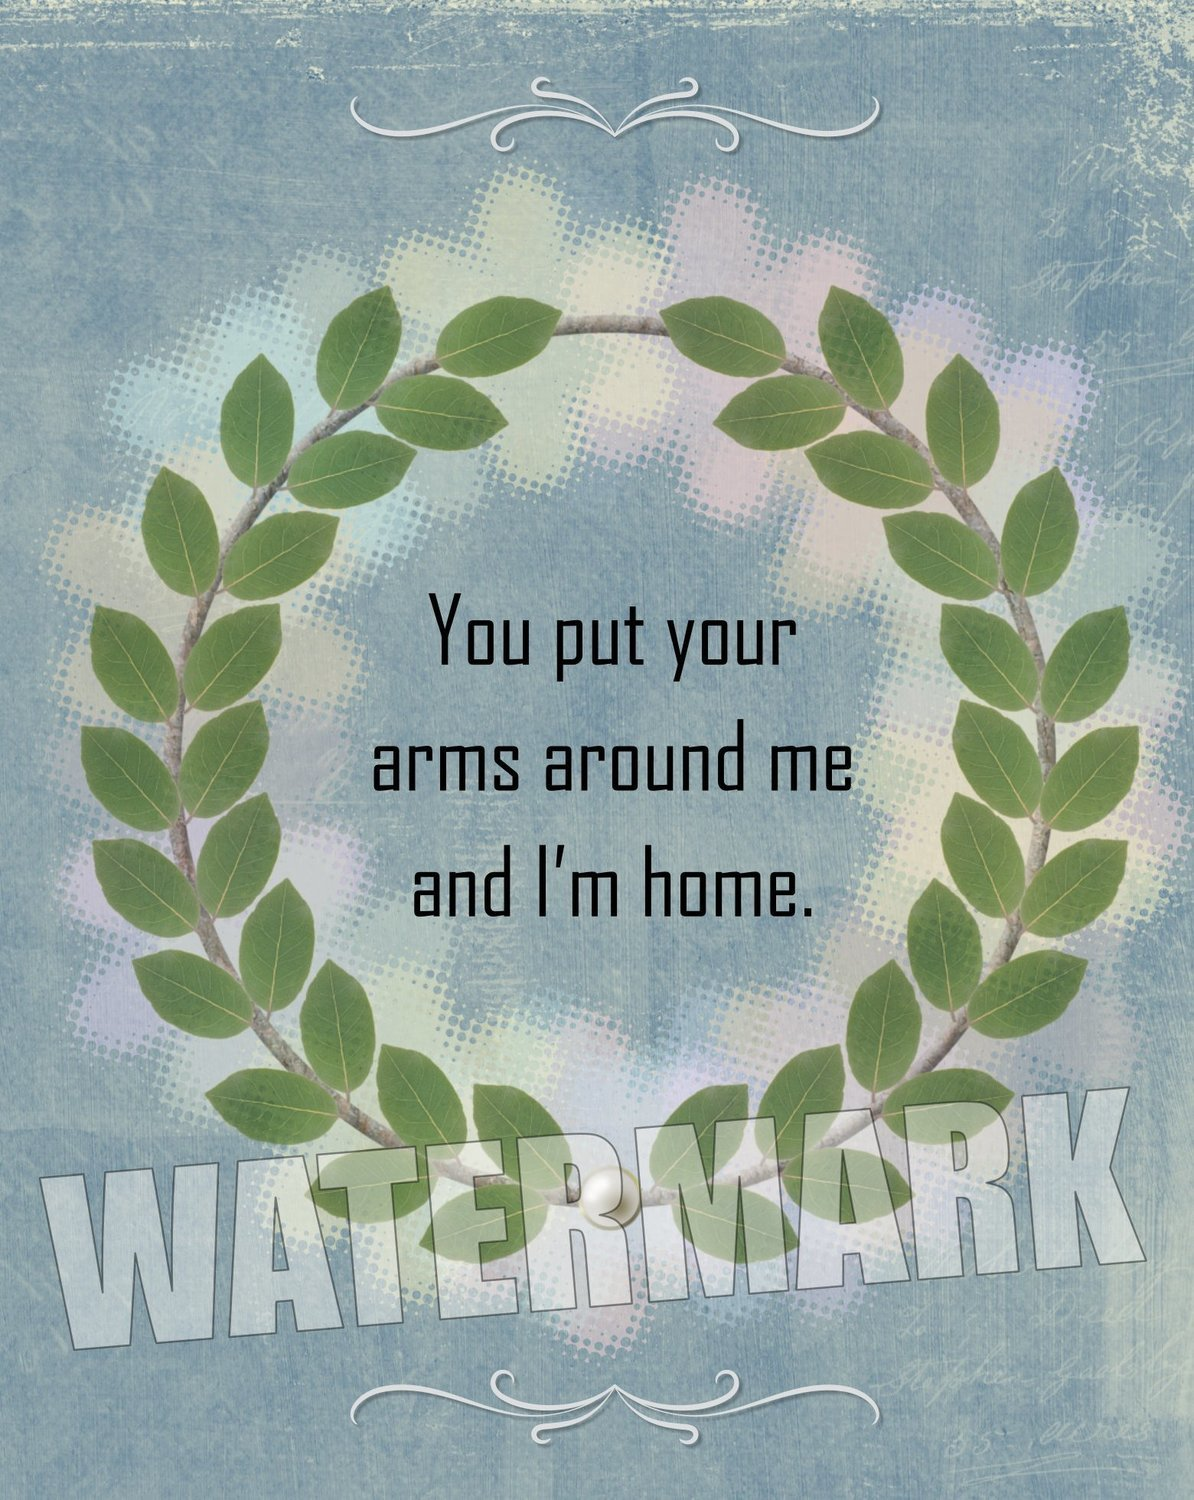 You put your arm around me… Quote Message Instant Digital Download Print Wall Decor Graphic Art Printable Home Office DIY